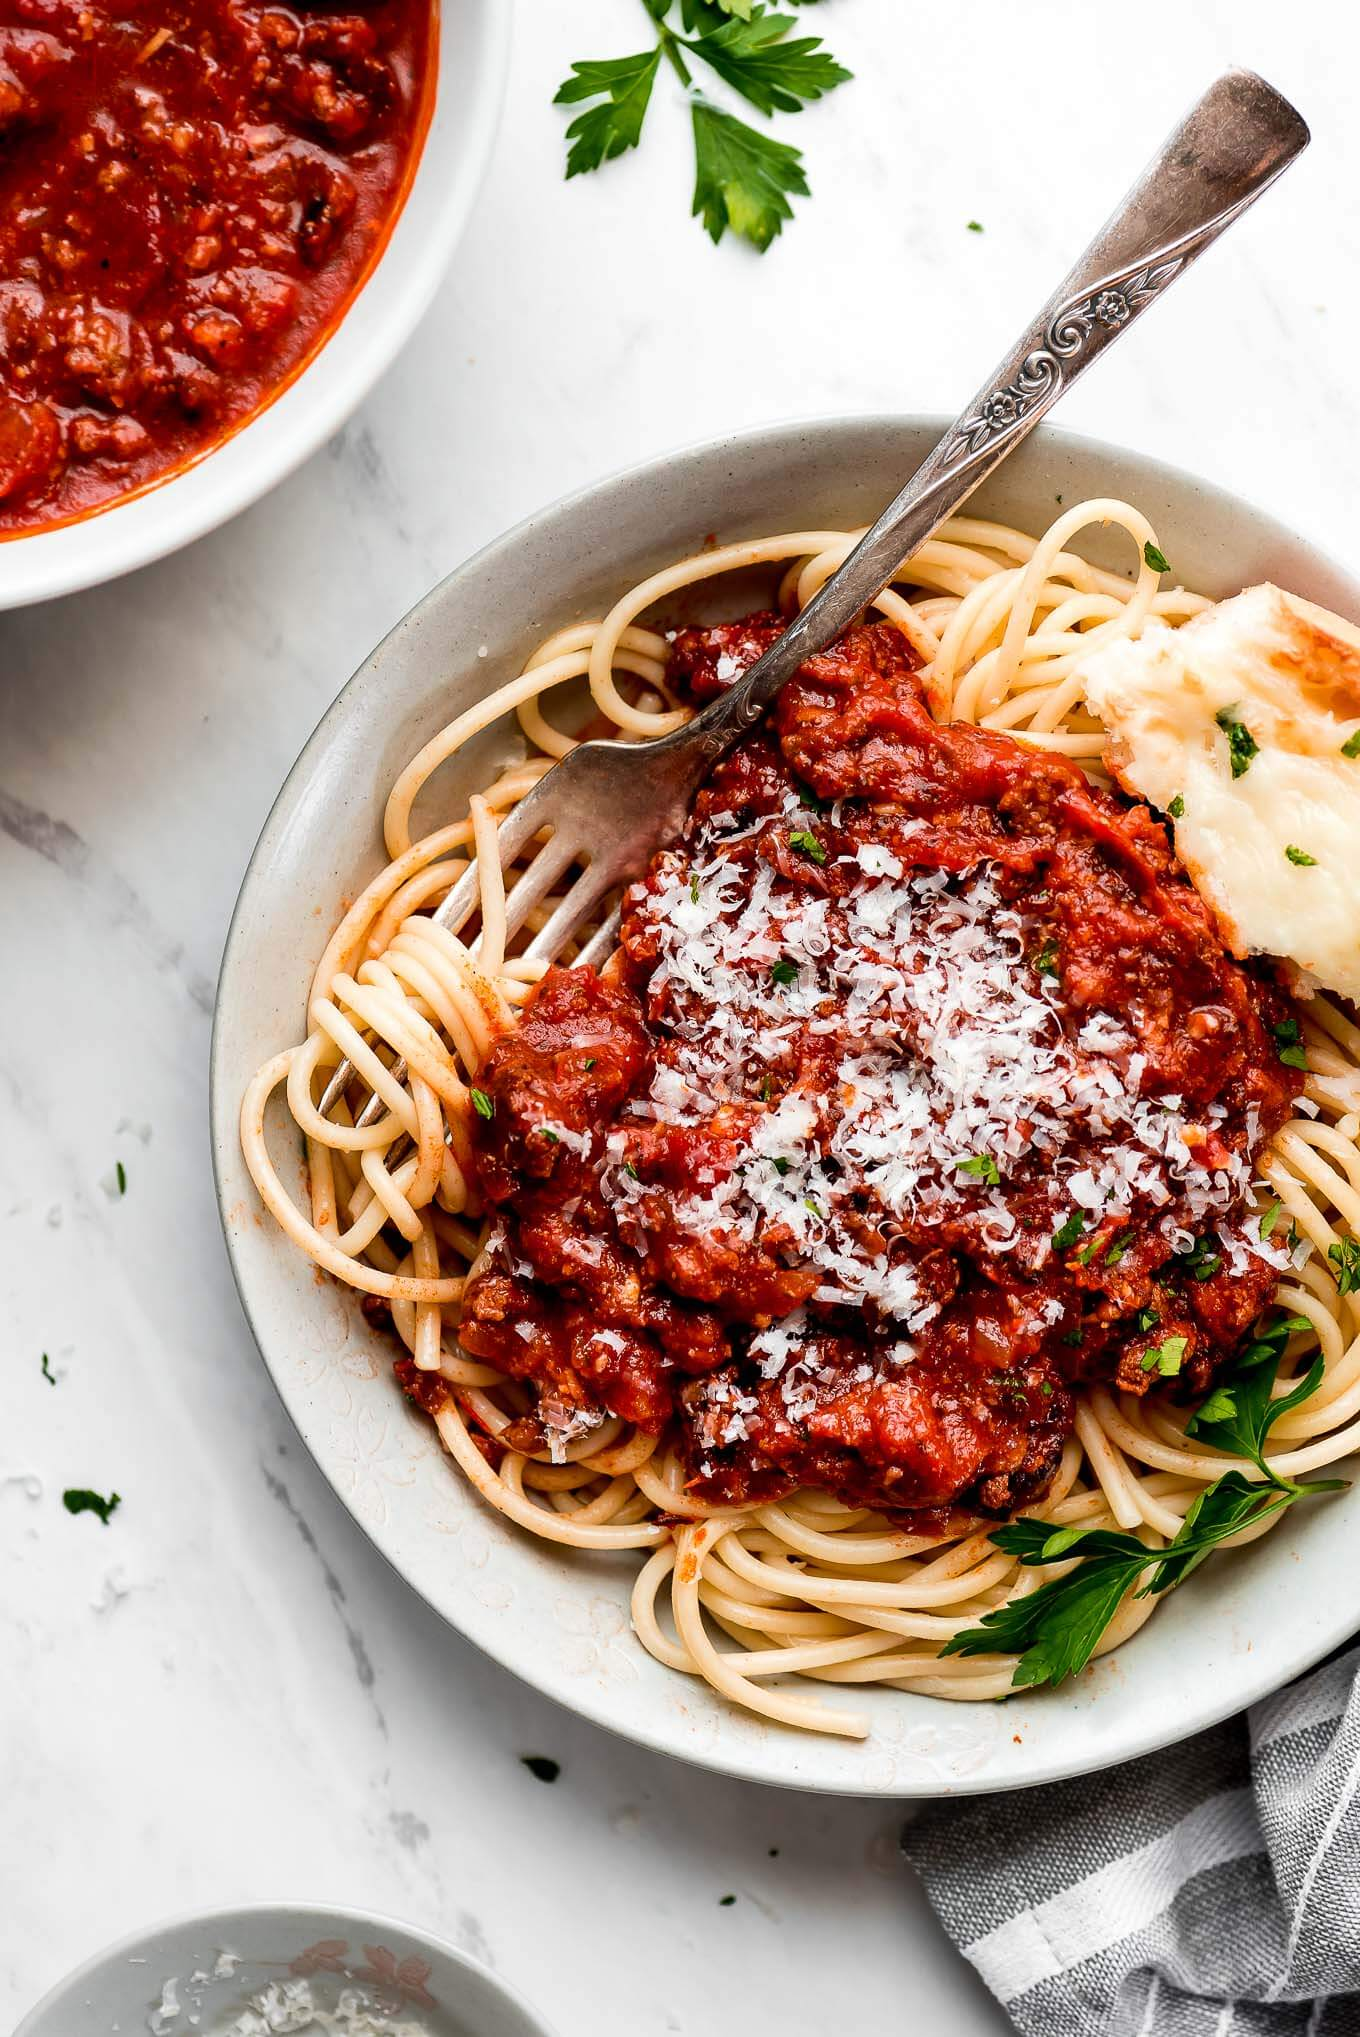 A bowl of spaghetti topped with homemade spaghetti sauce and Parmesan cheese.